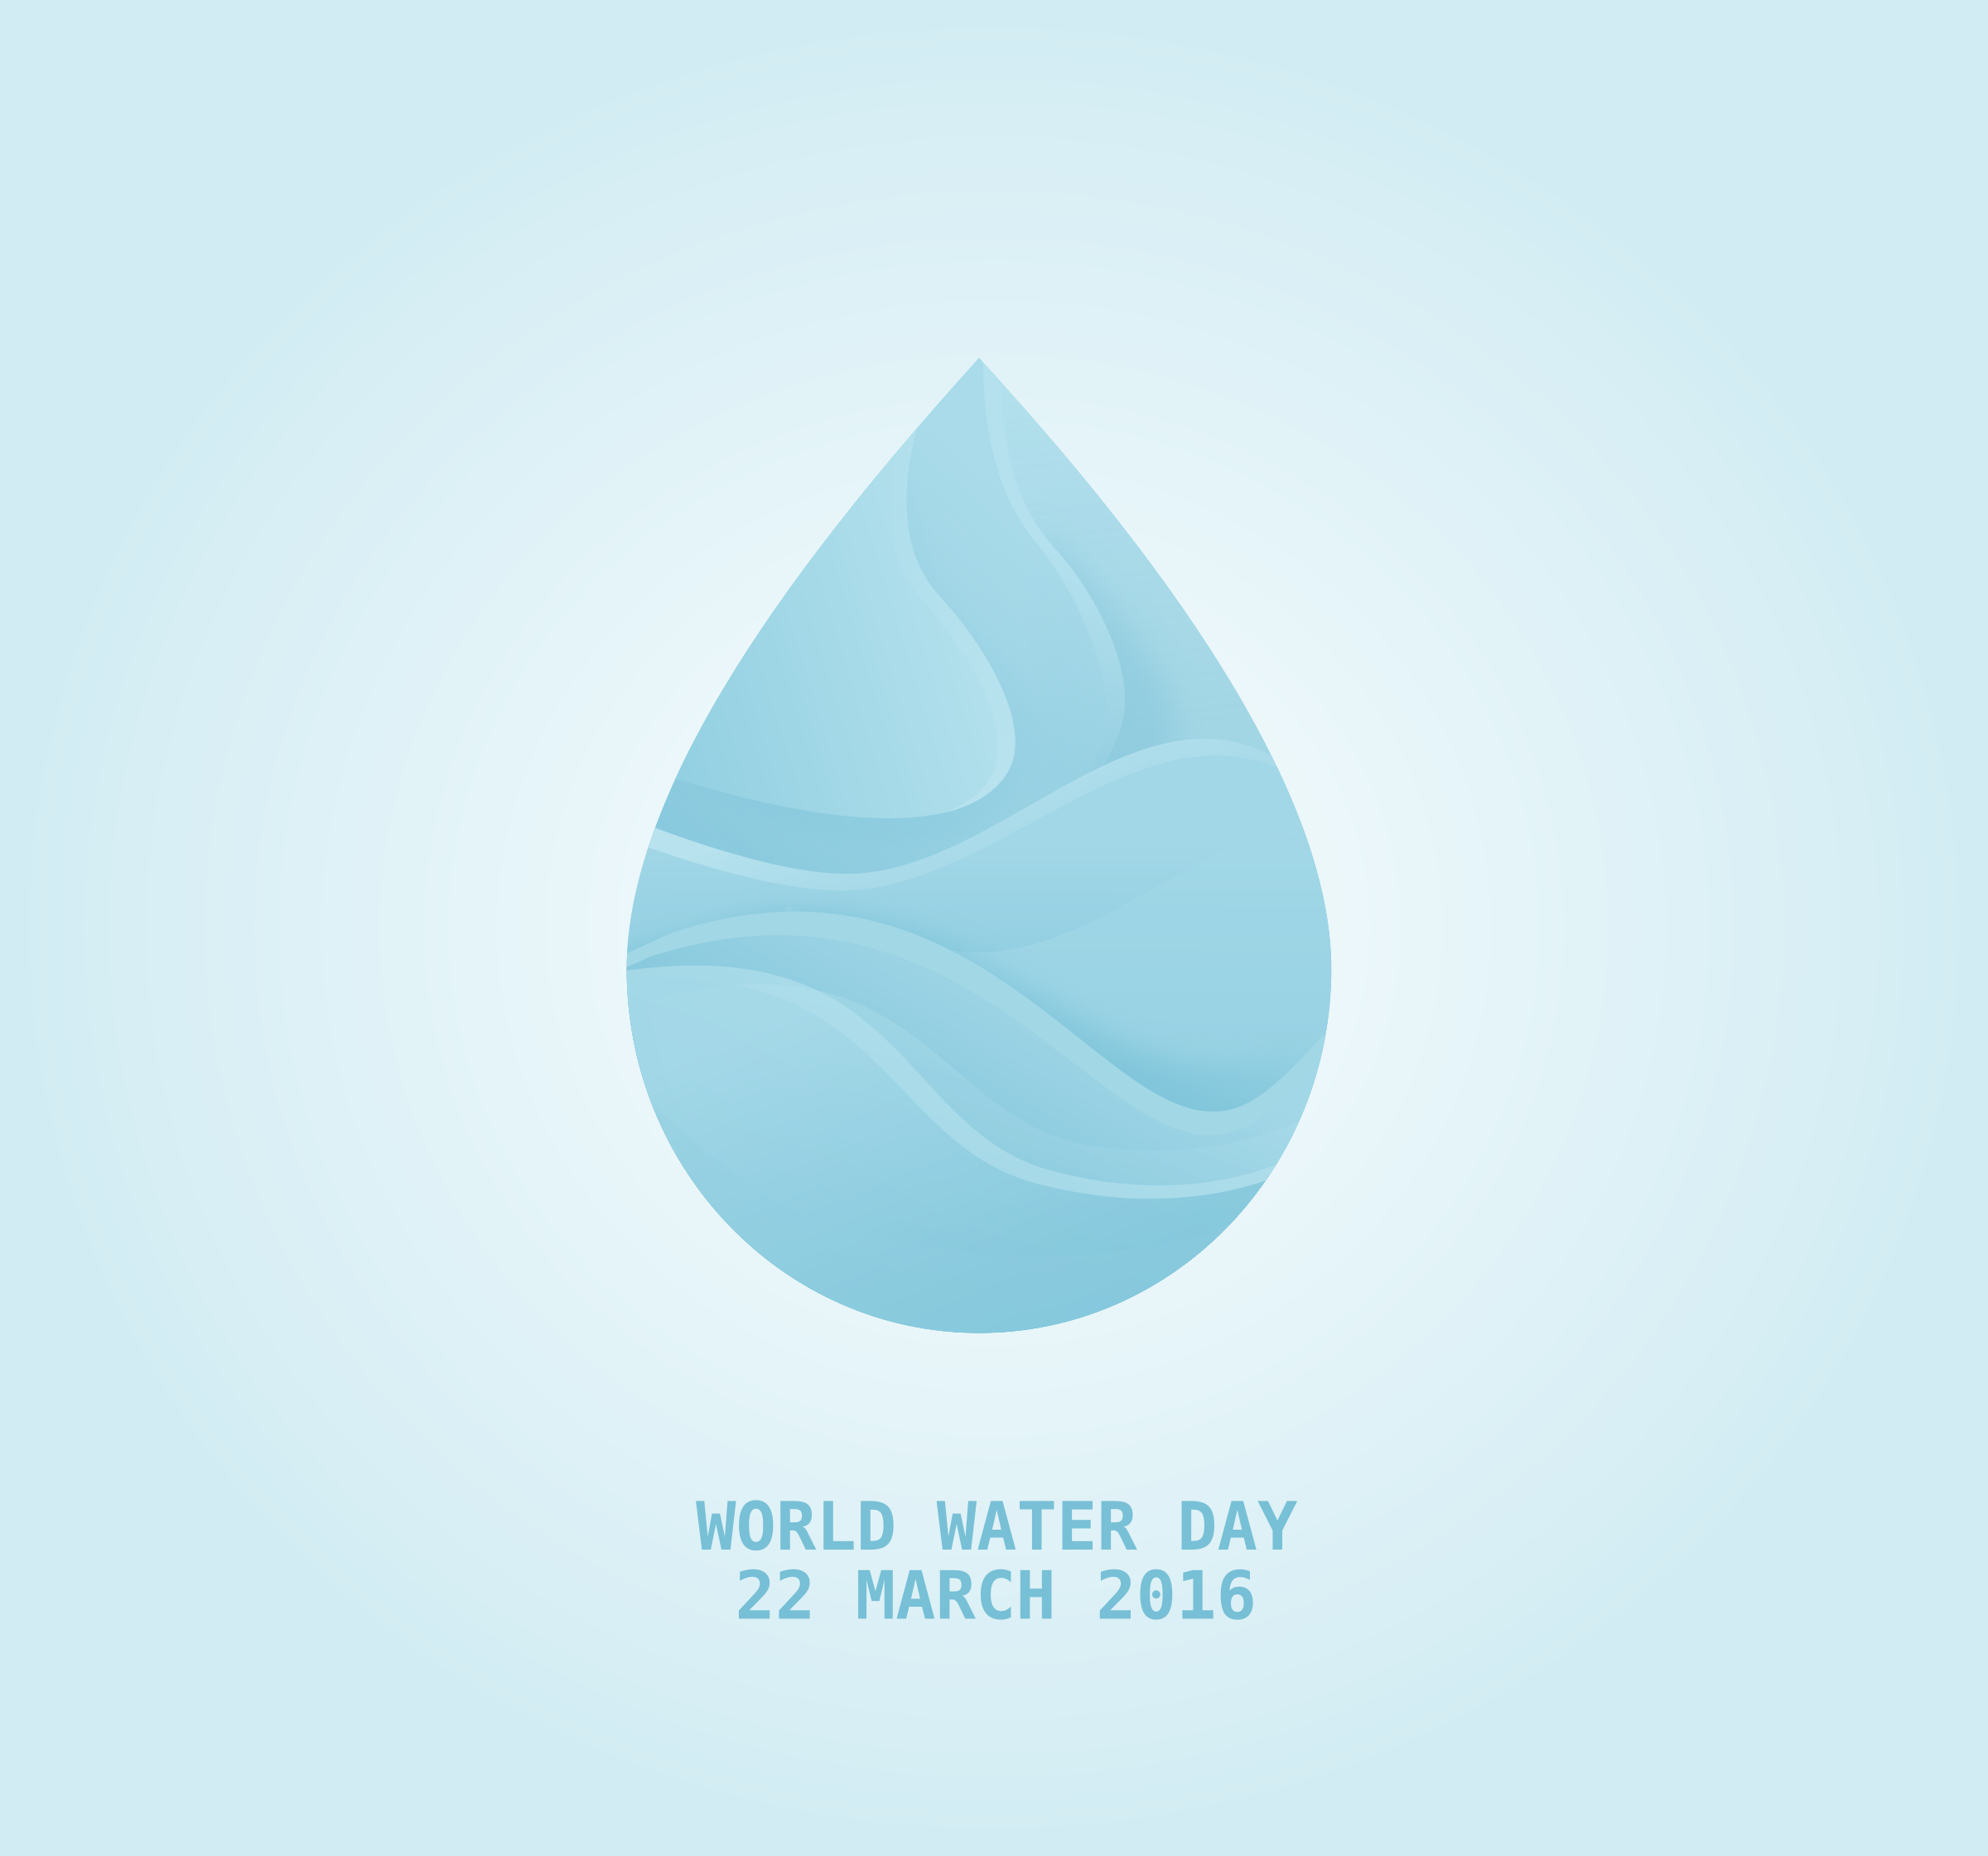 World water day by ozant